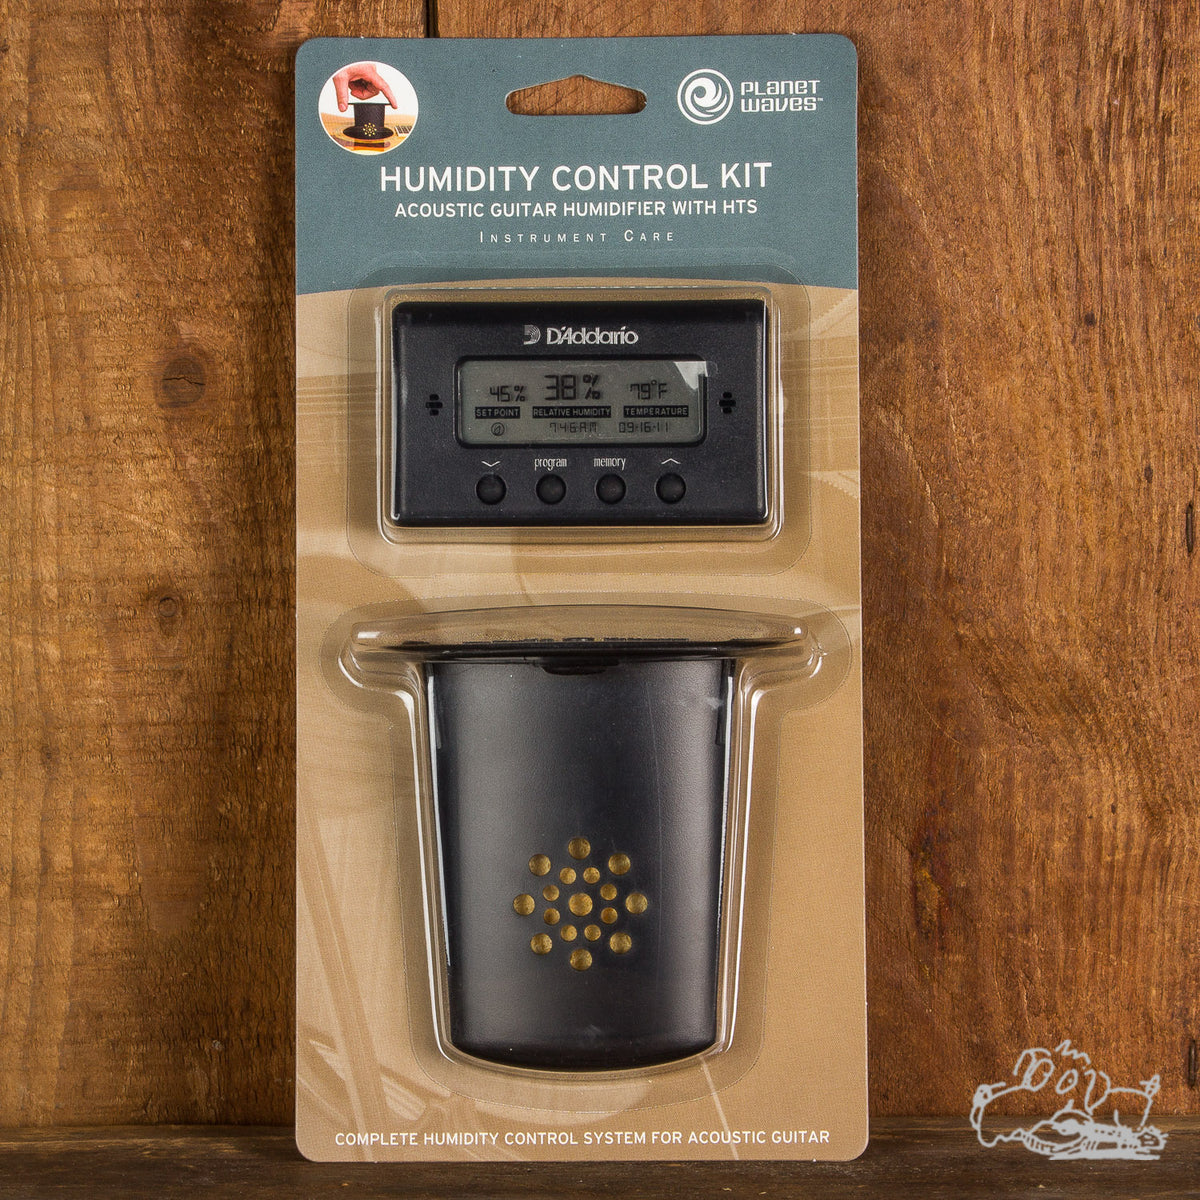 D'addario Planet Waves Humidity Control Kit